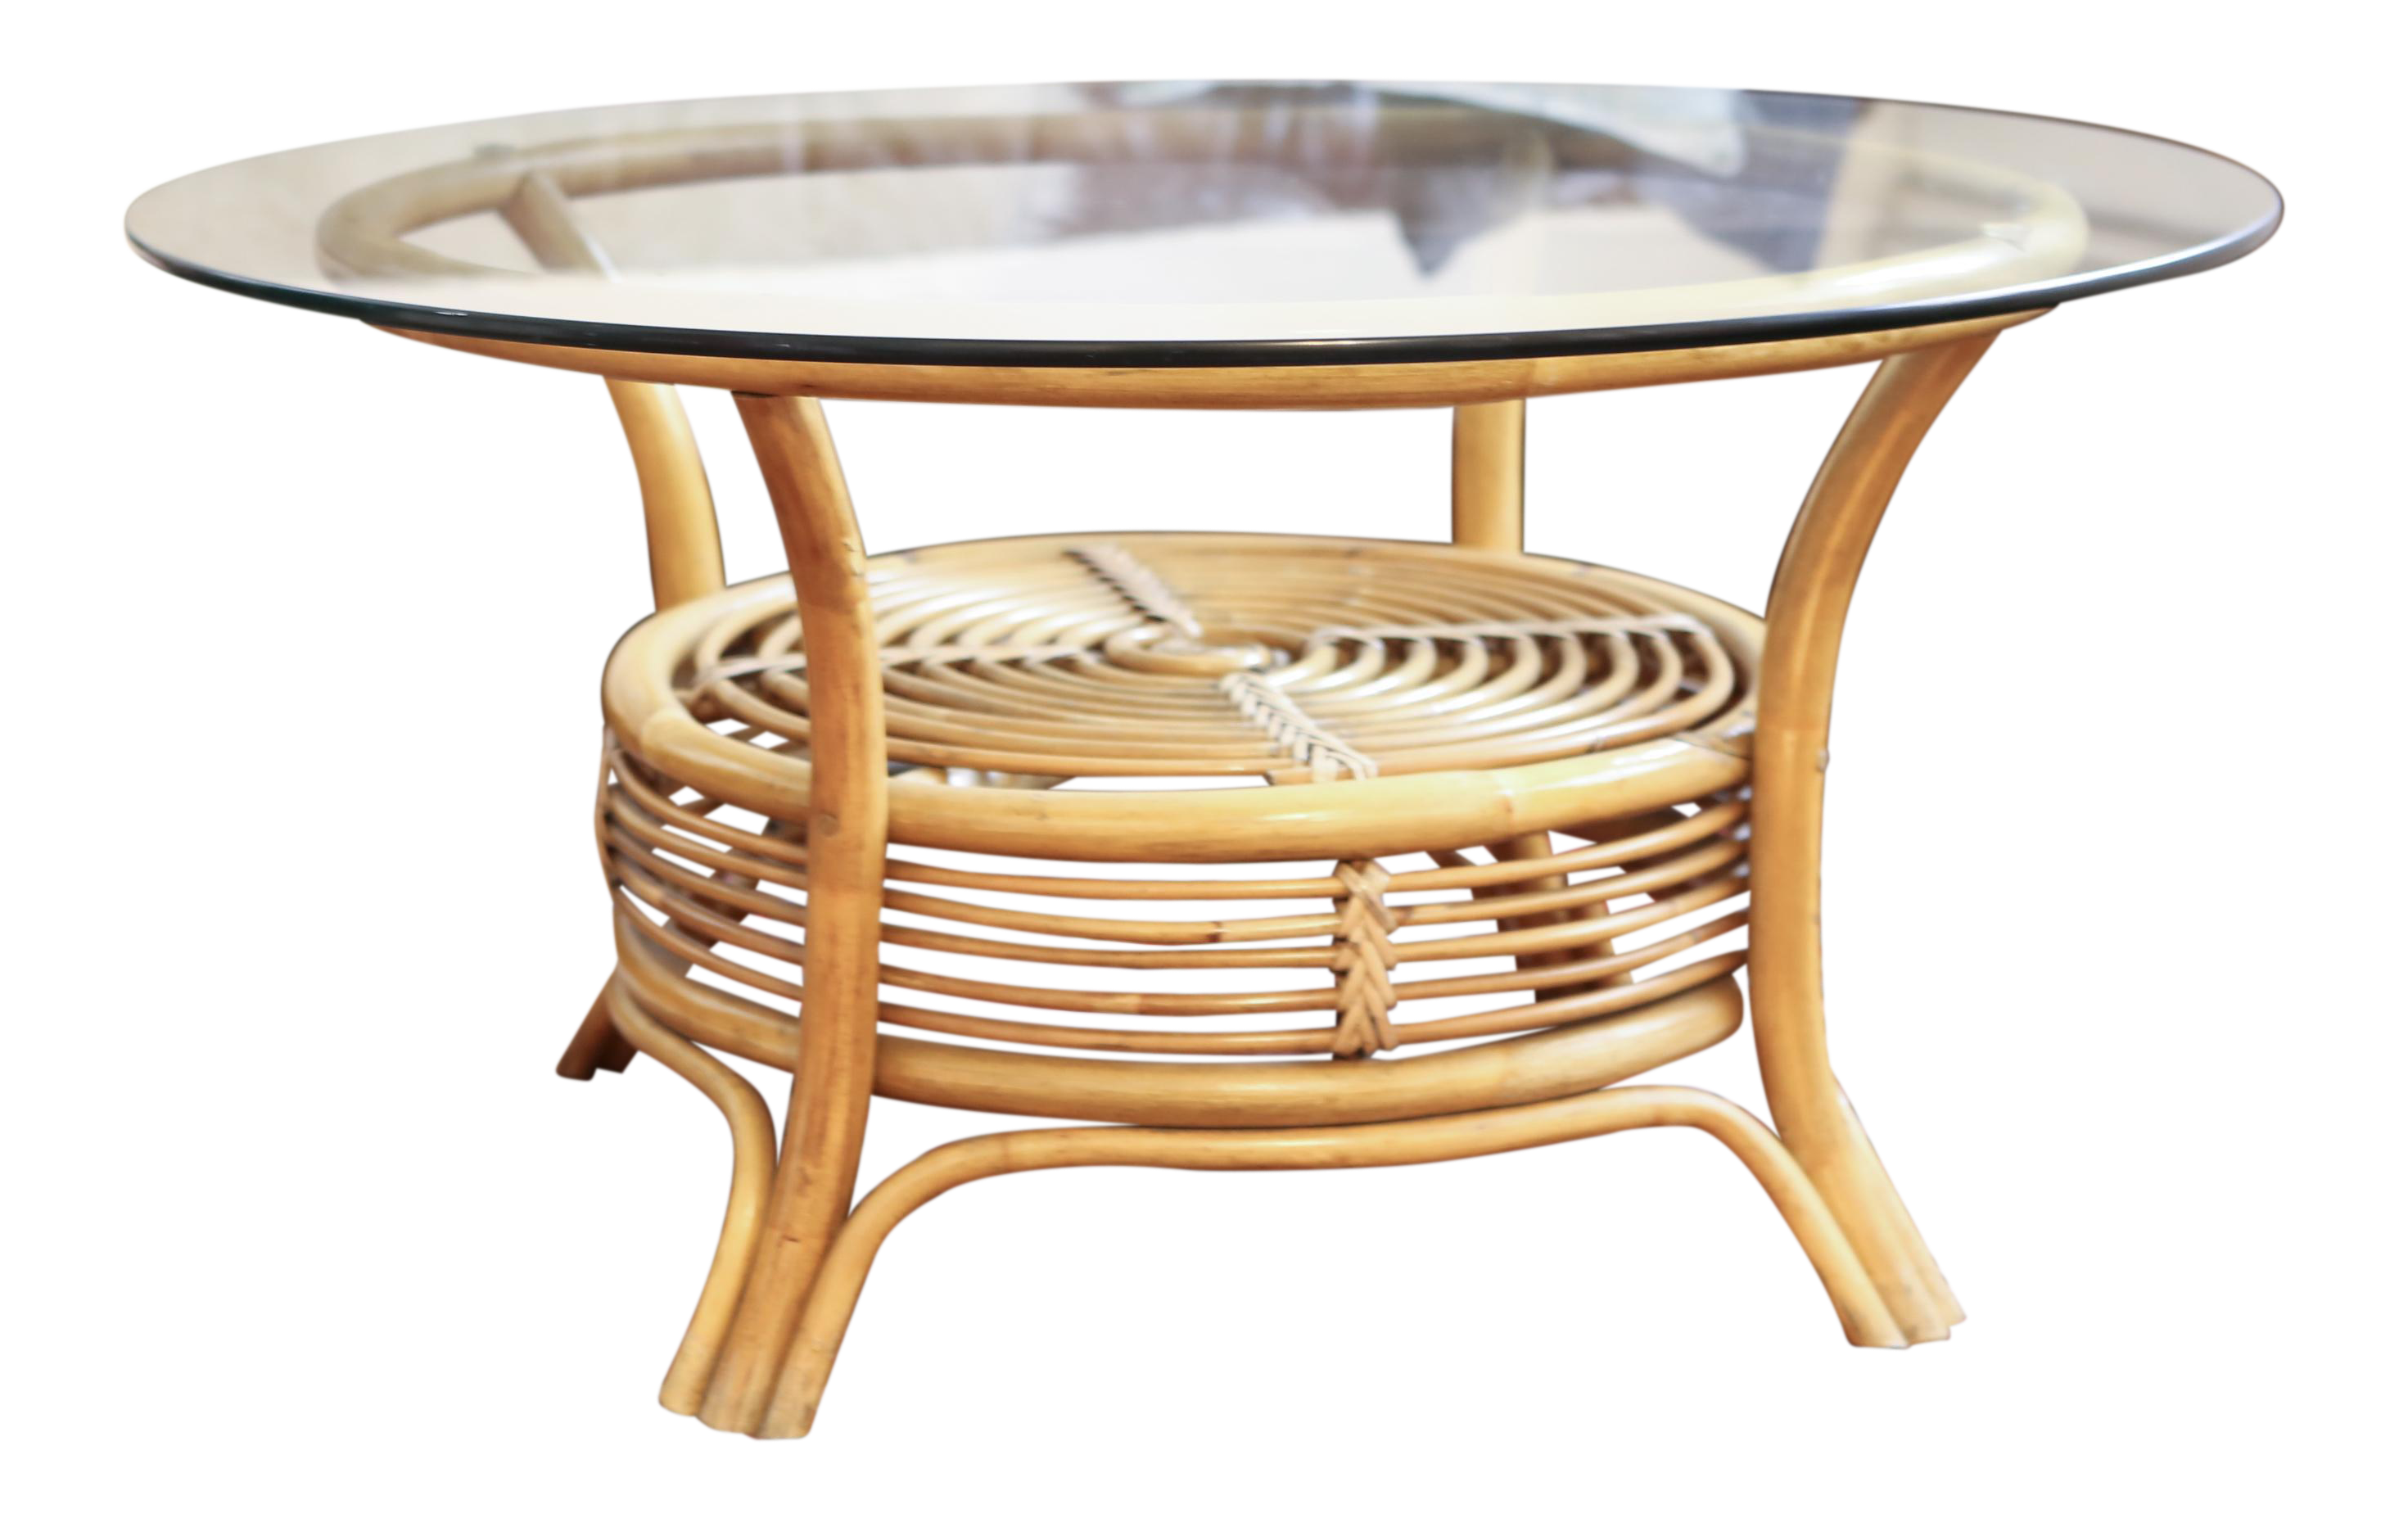 Round Rattan Bamboo Pencil Reed Glass Top Coffee Table Chairish - Bamboo end table glass top